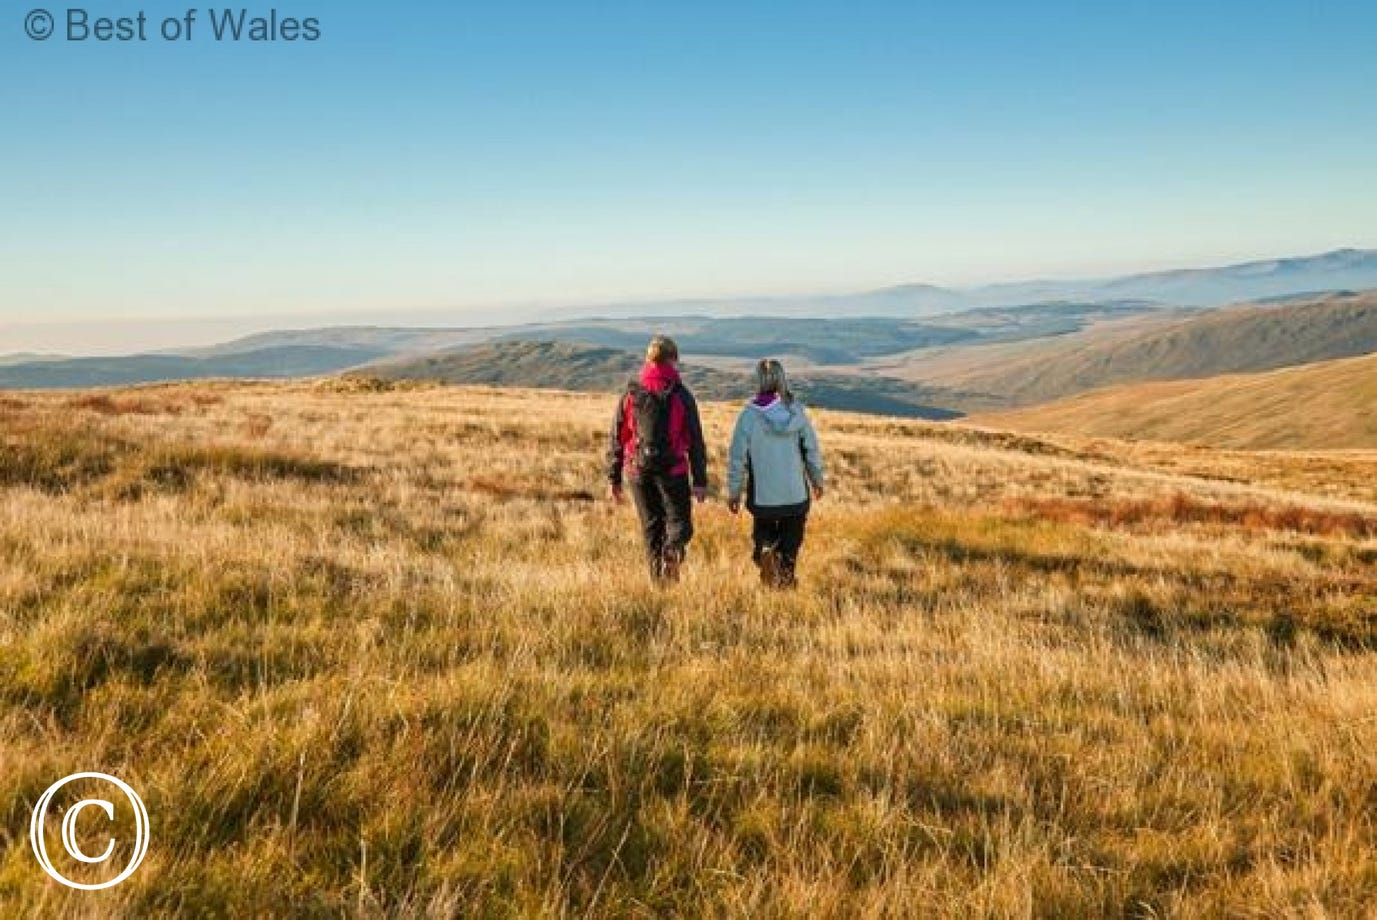 Walking in the Brecon Beacons National Park